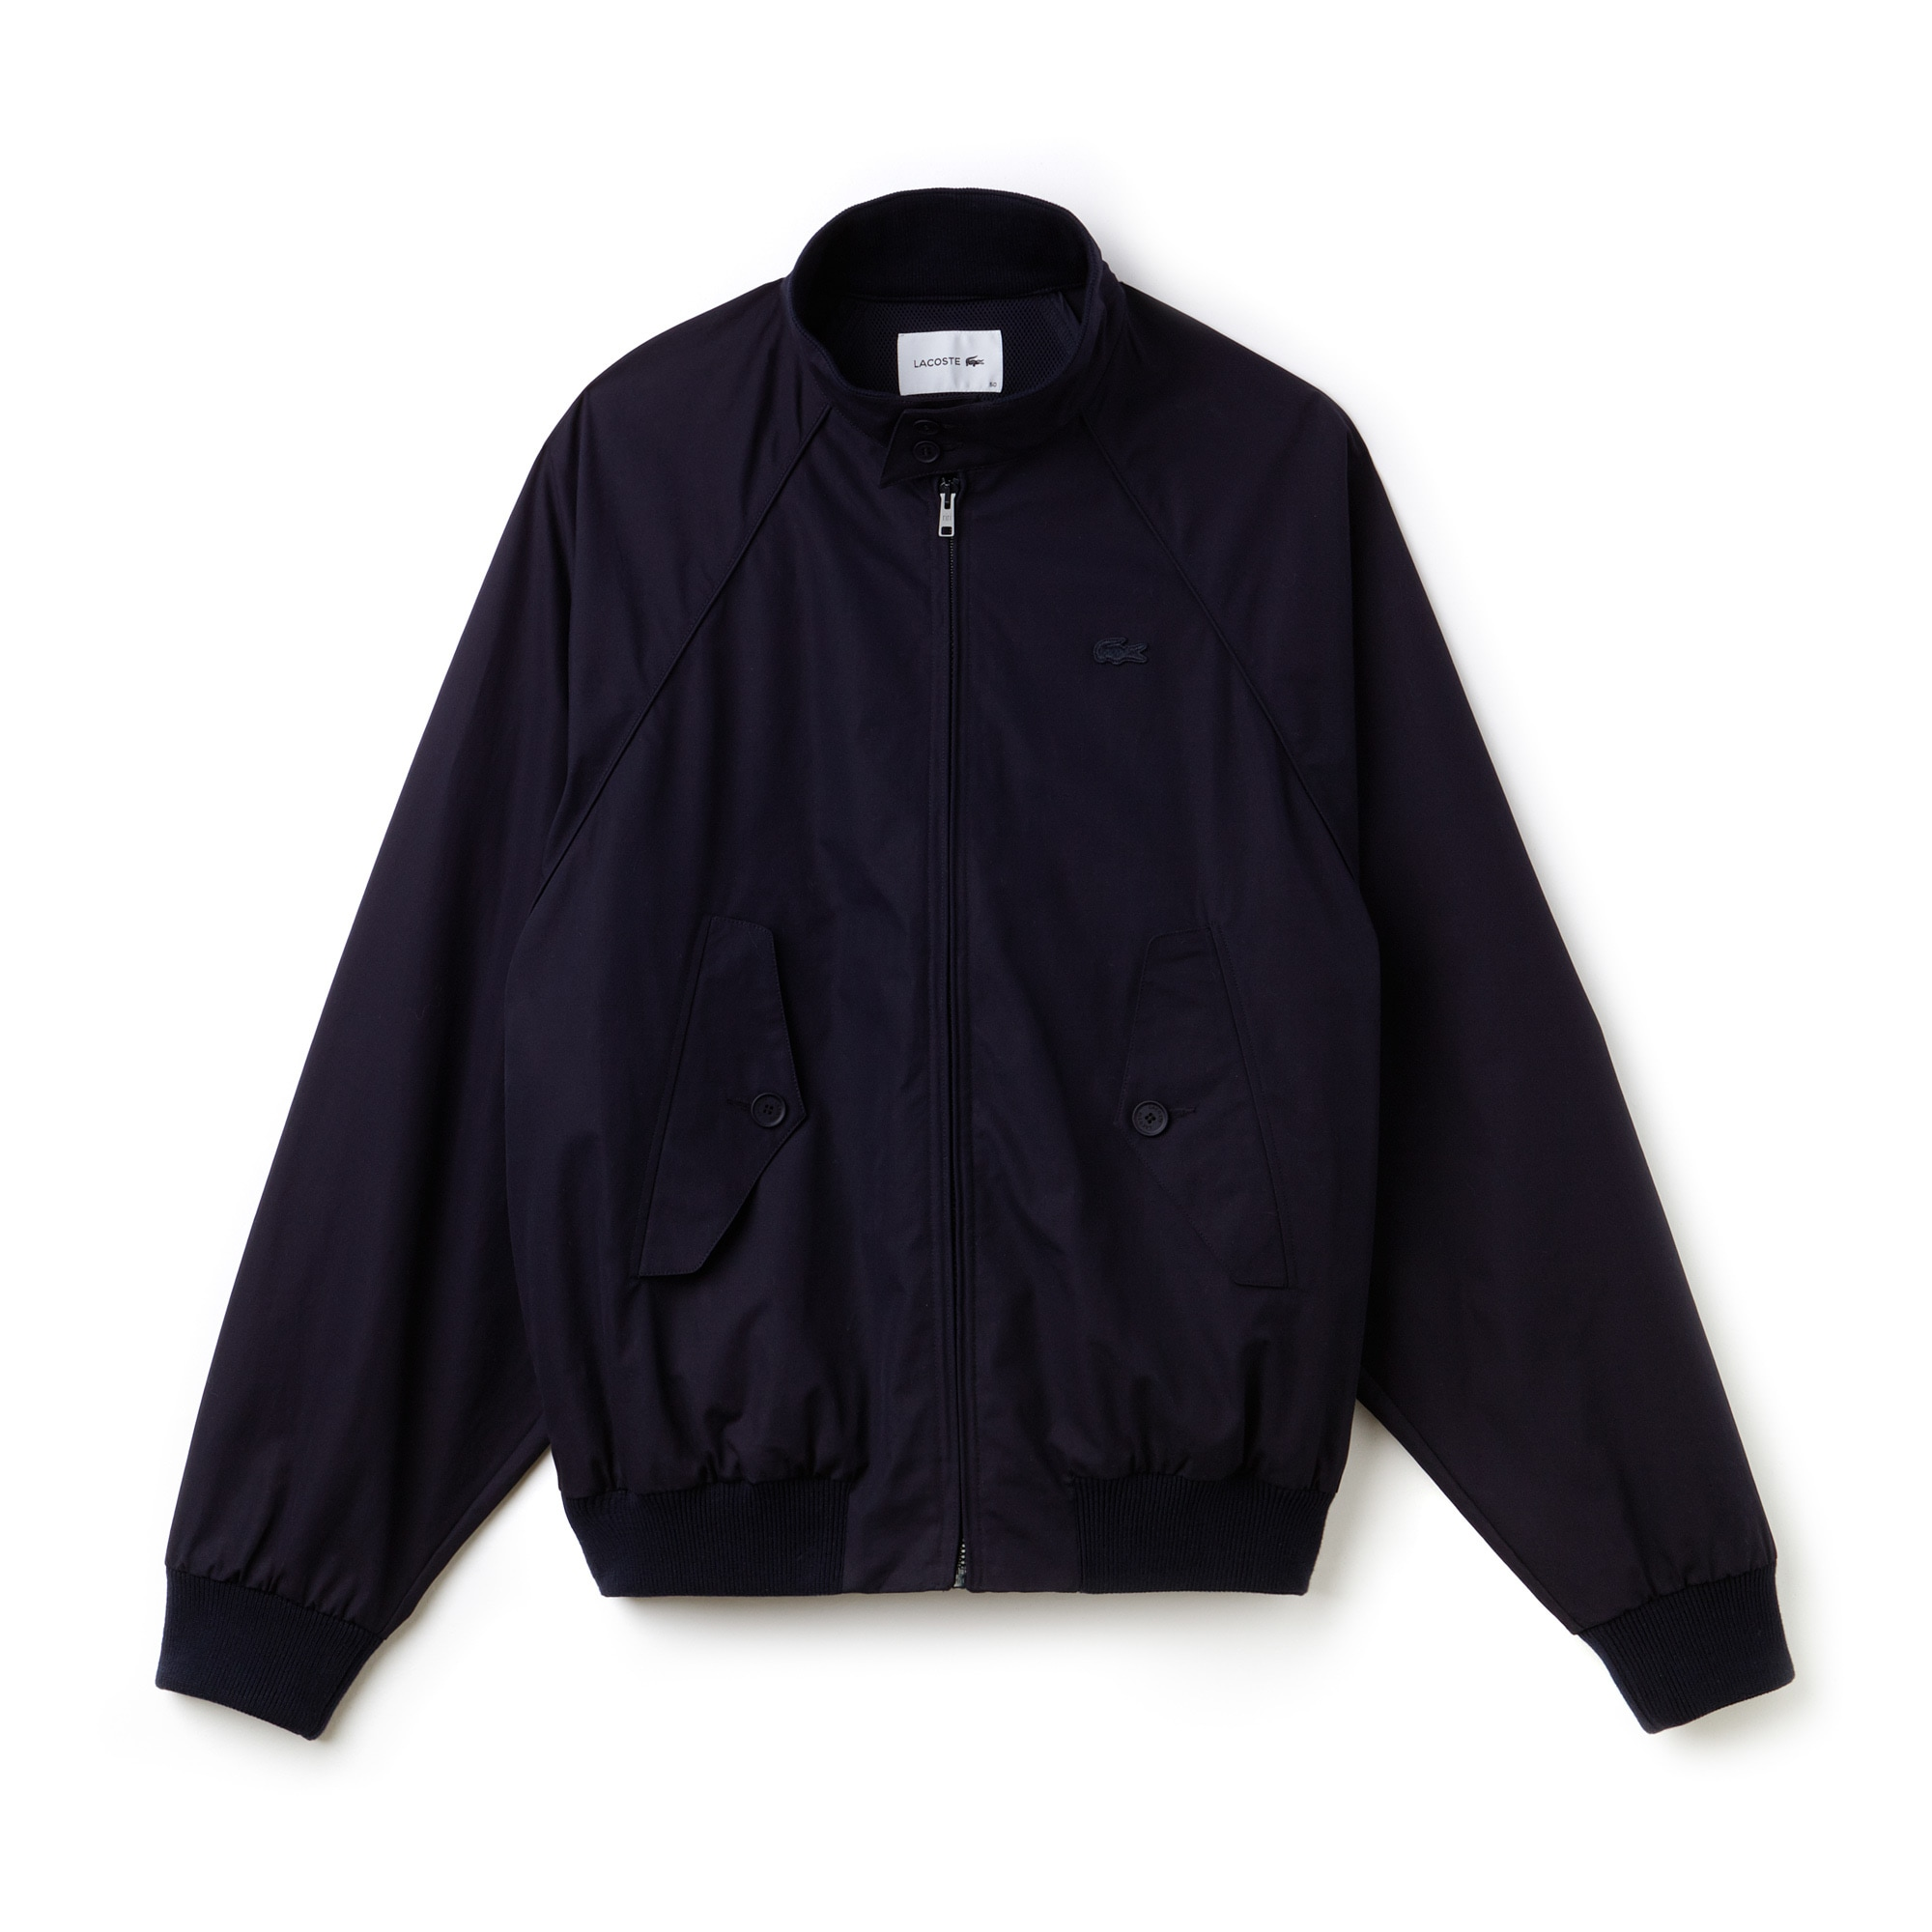 Men's Fashion Show Oversized Jacket